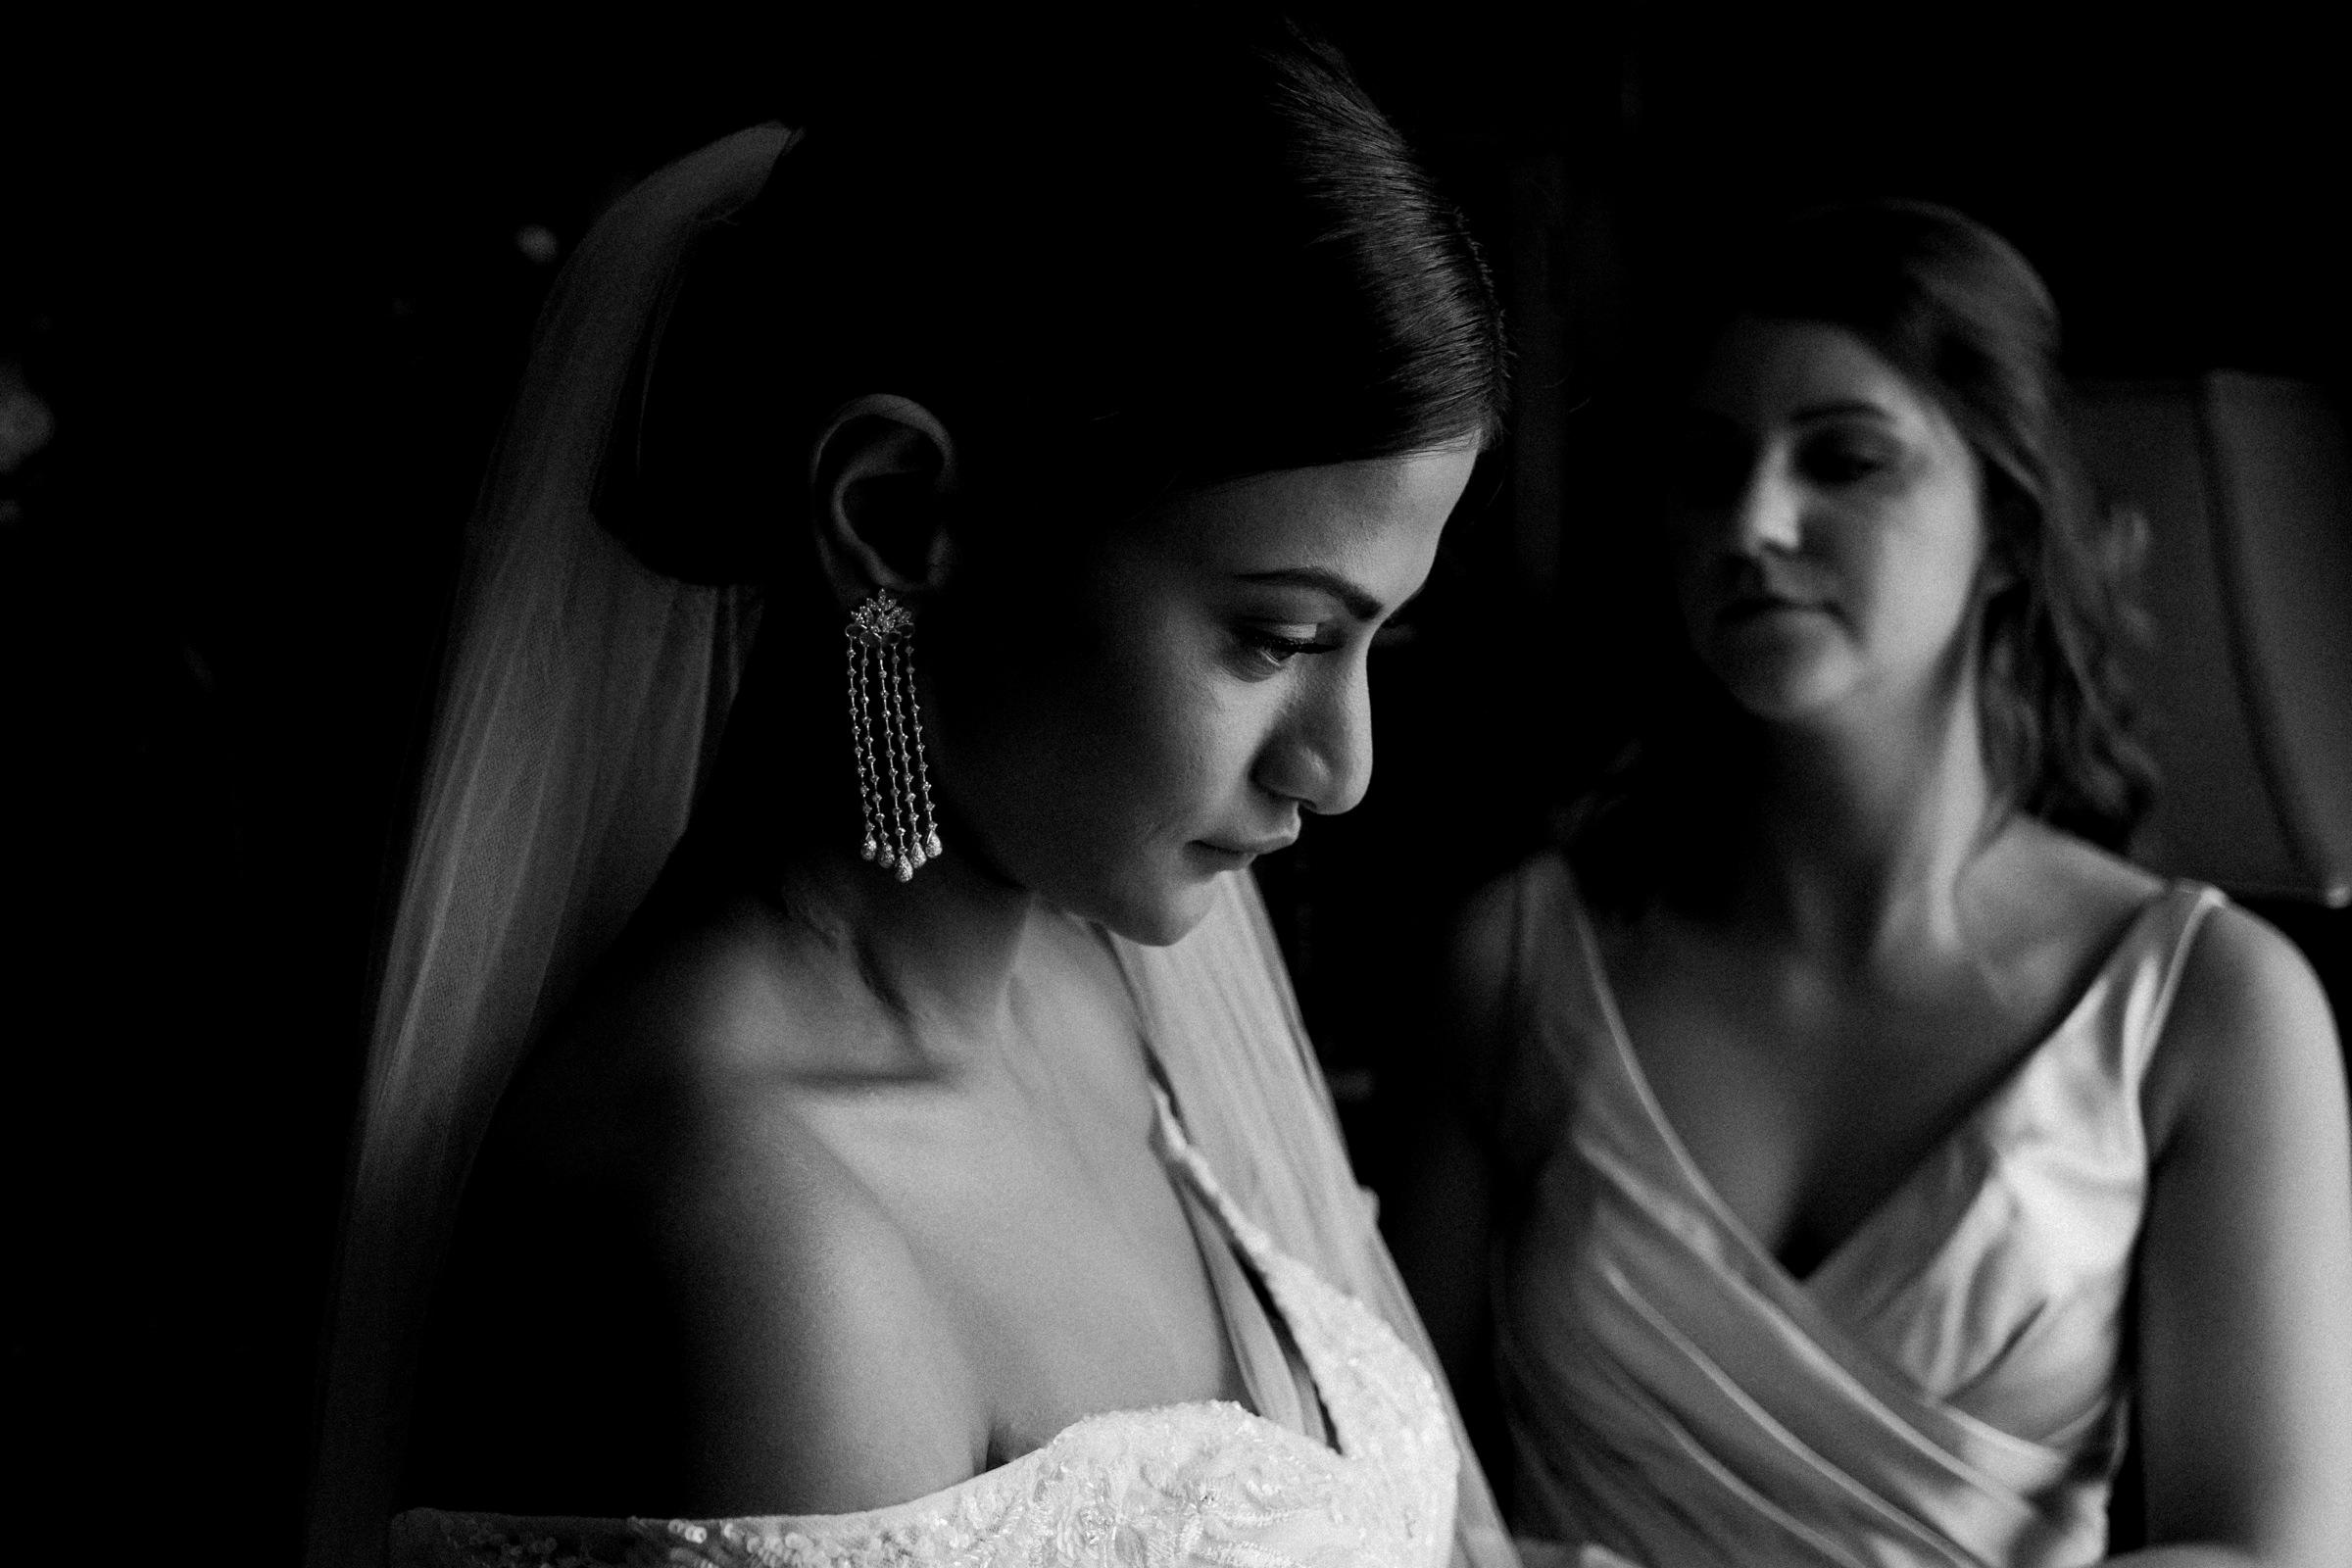 bride-getting-ready-and-thinking-about-her-day-new-orleans-austin-houston-wedding-photo-by-dark-roux